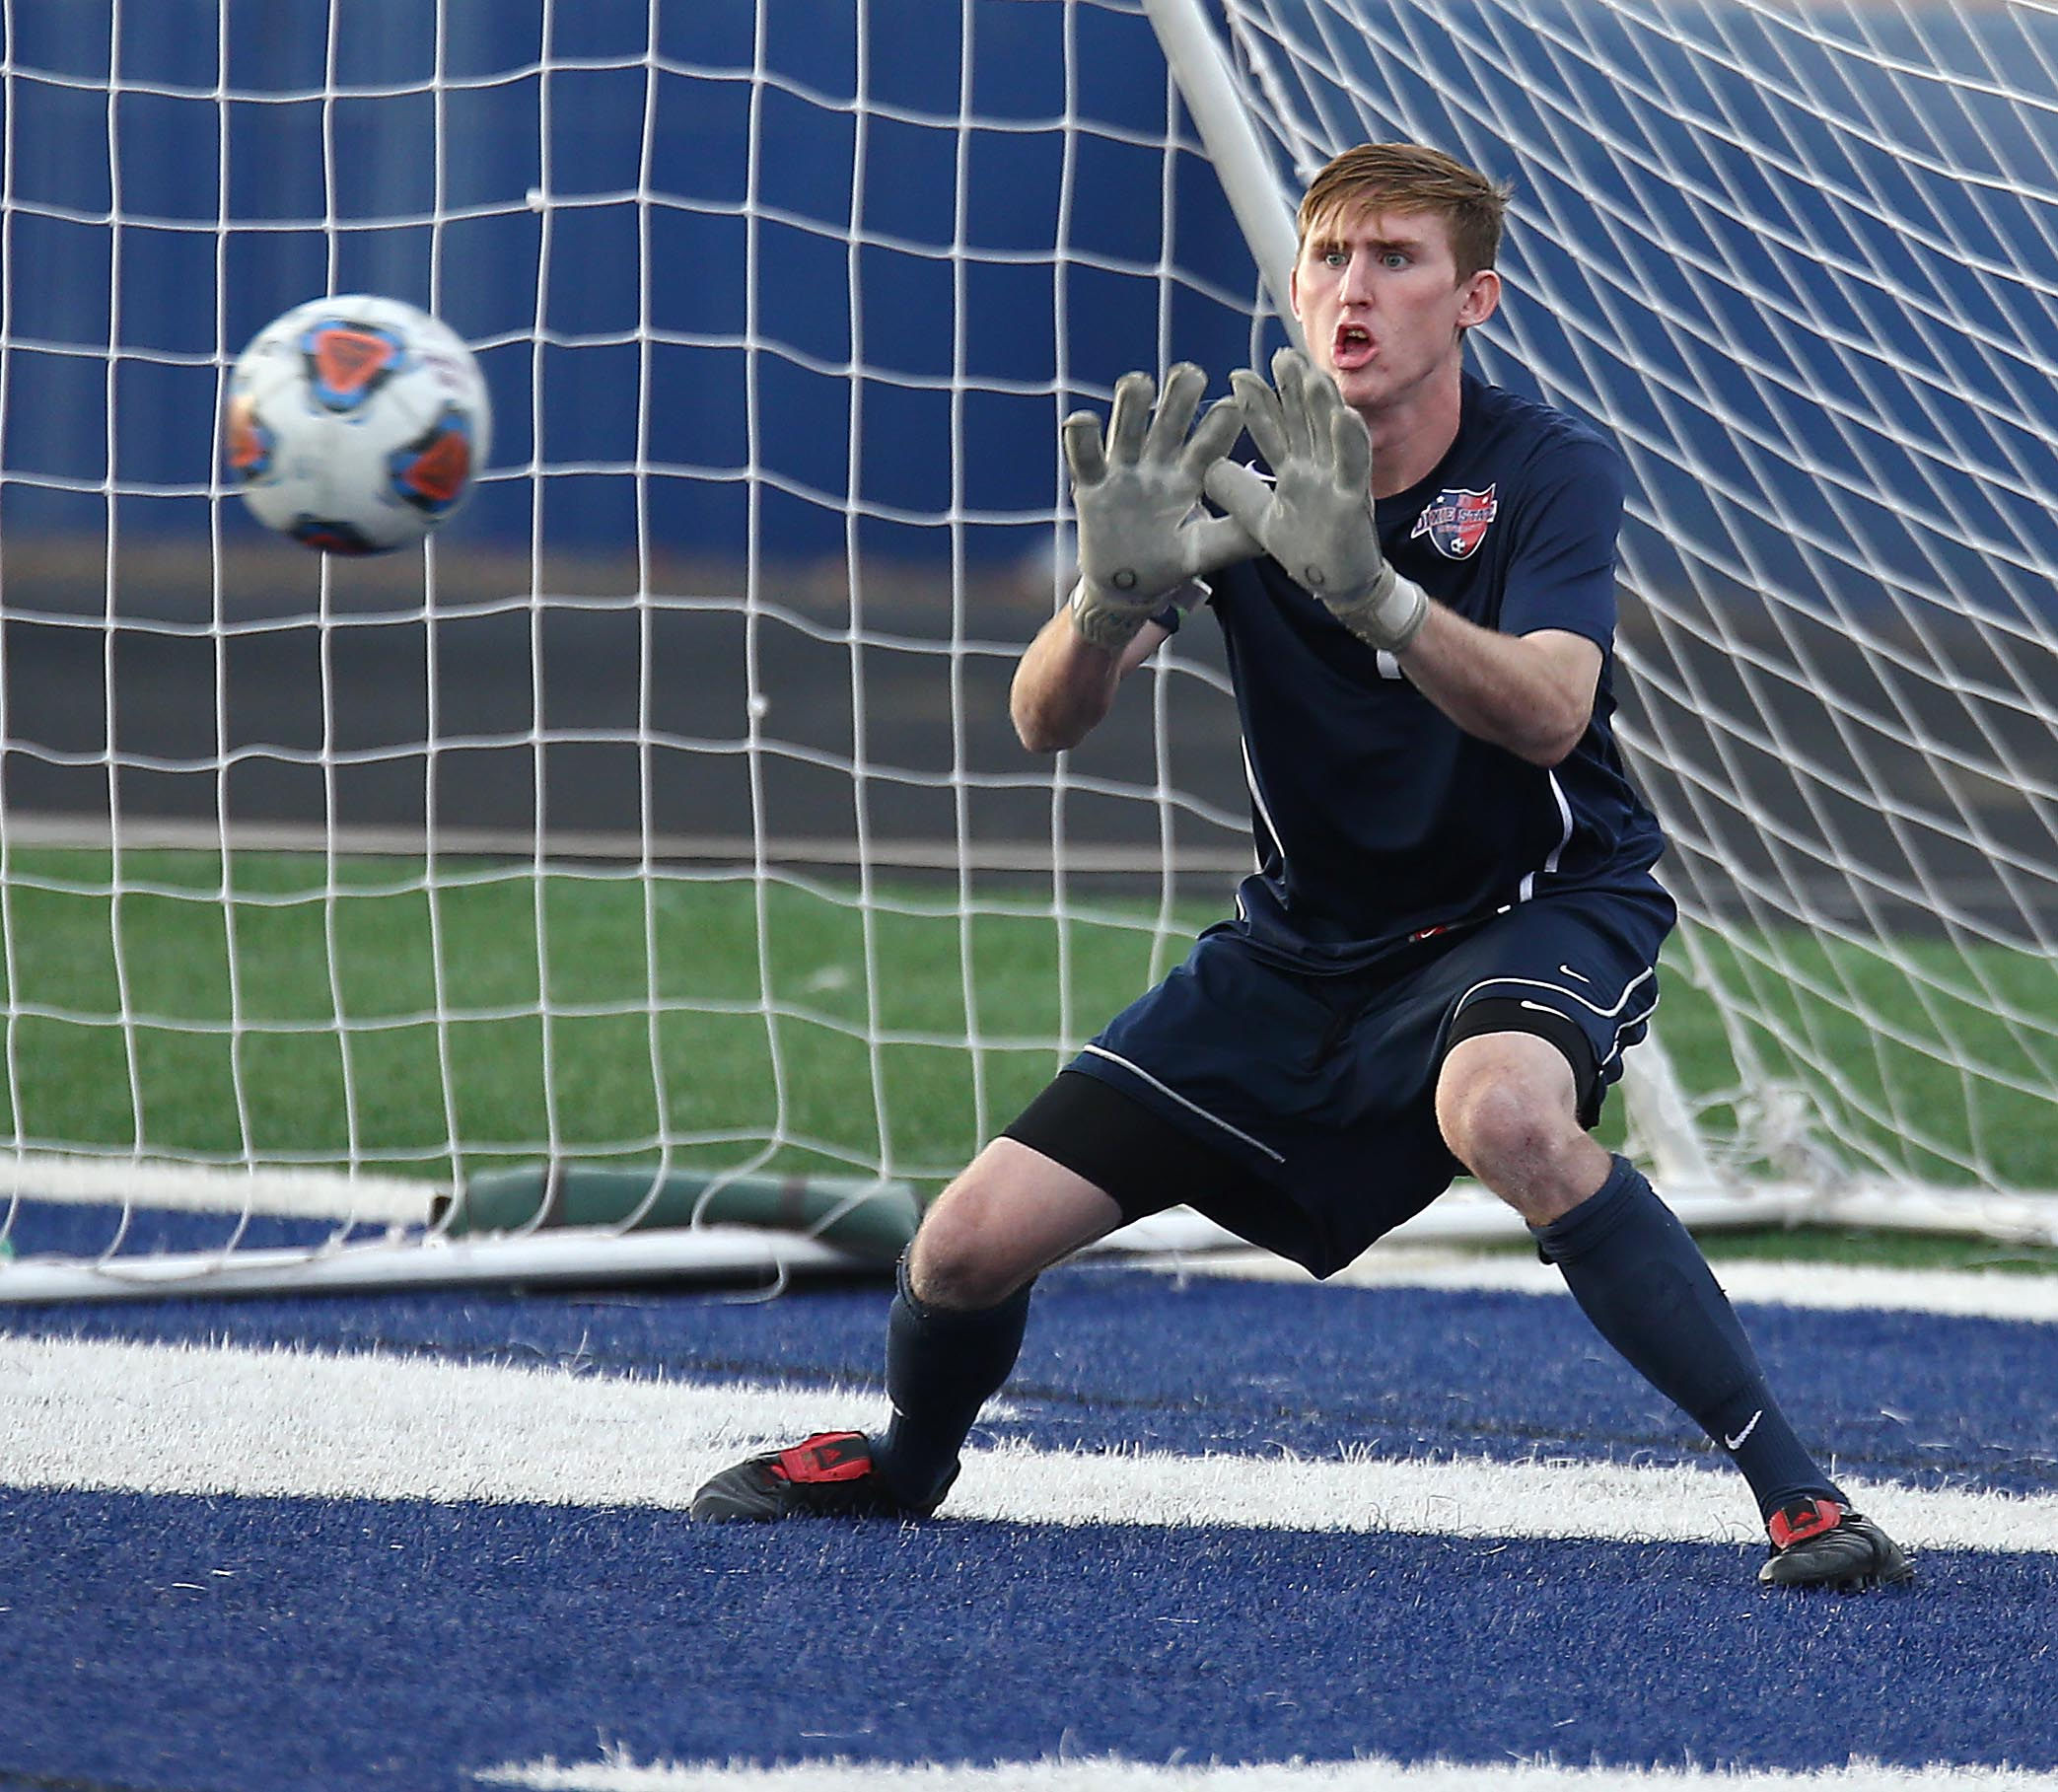 Dixie State's Bradley Trella (1) makes a save, Dixie State University vs. Dominican University, Mens Soccer, St. George, Utah, Oct. 29, 2016,   Photo by Robert Hoppie, ASPpix.com, St. George News